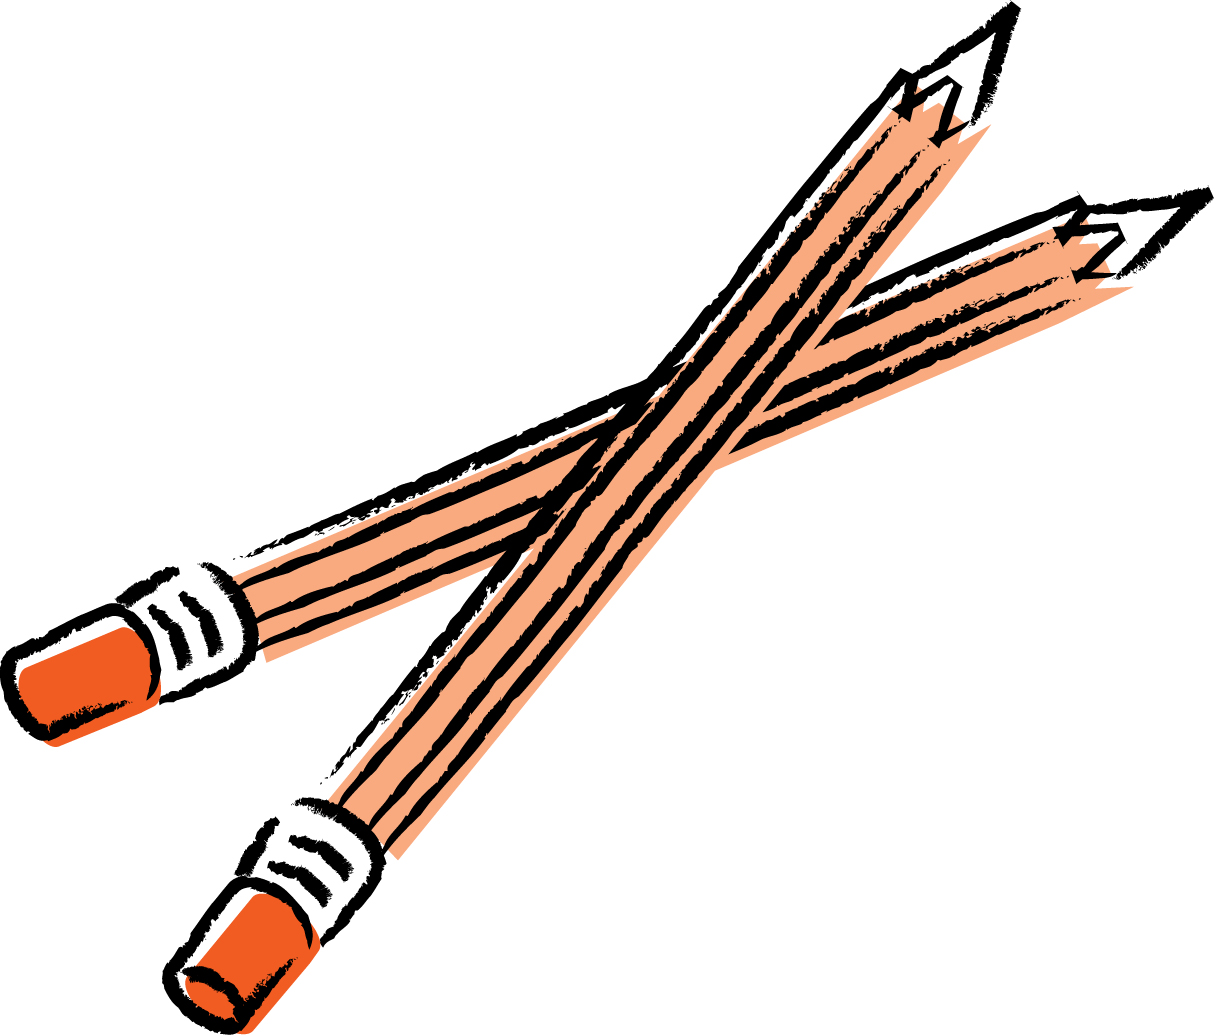 hight resolution of pencil clip art free clipart images 2